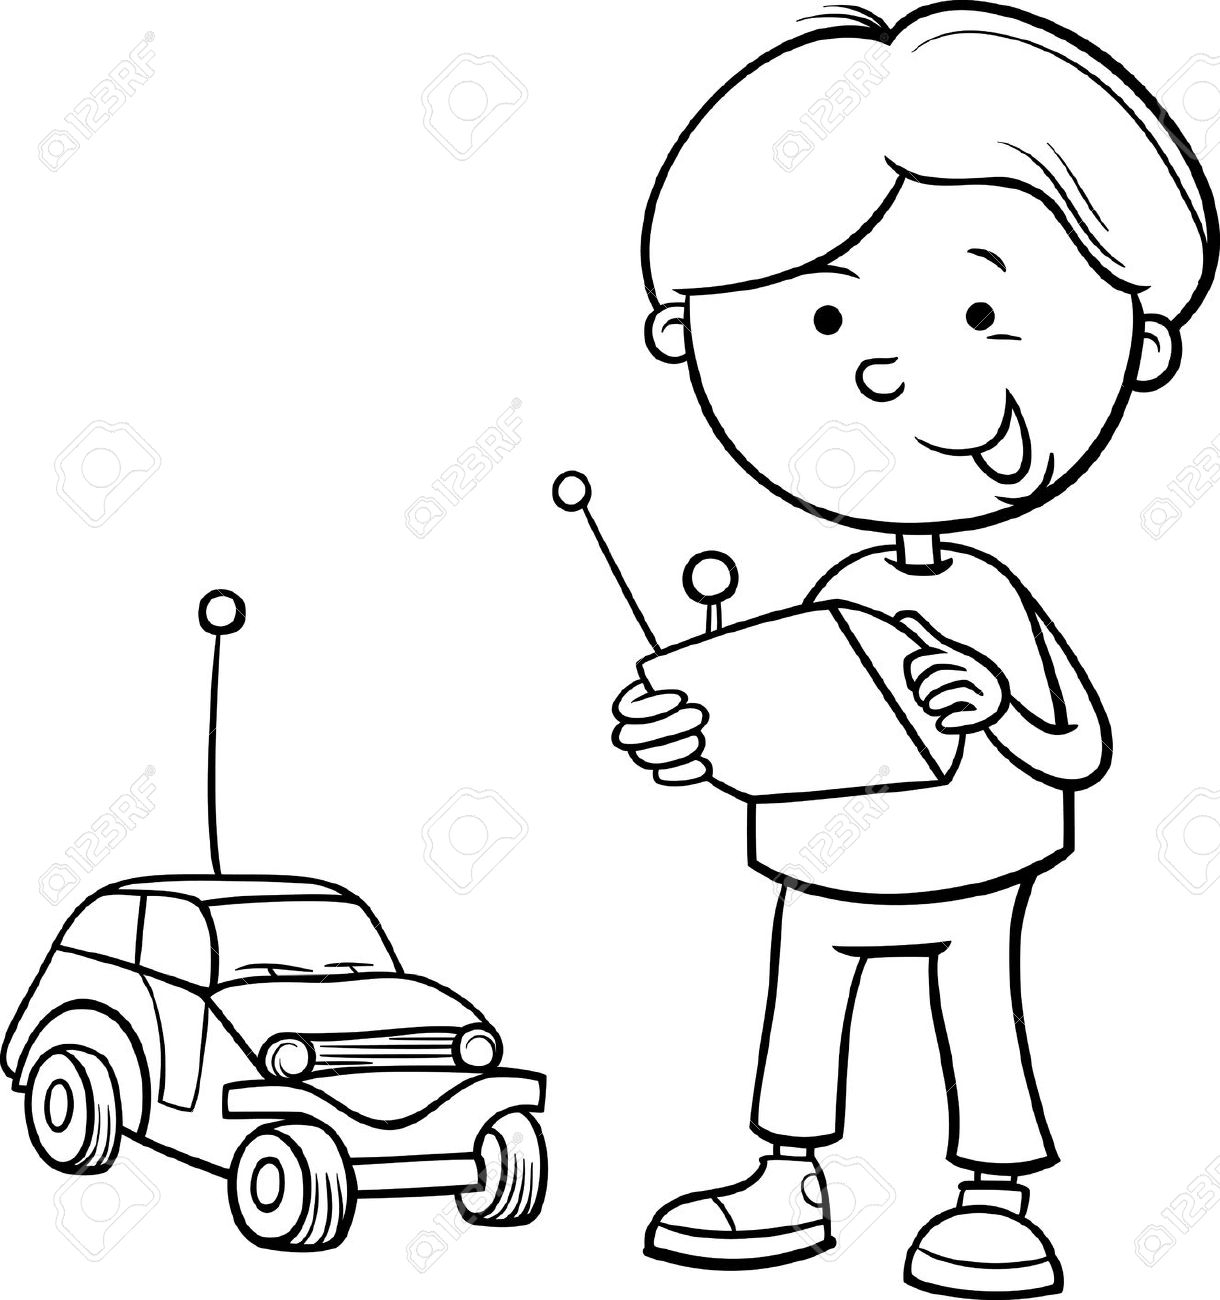 rc car coloring pages rc car coloring pages at getcoloringscom free printable coloring rc car pages